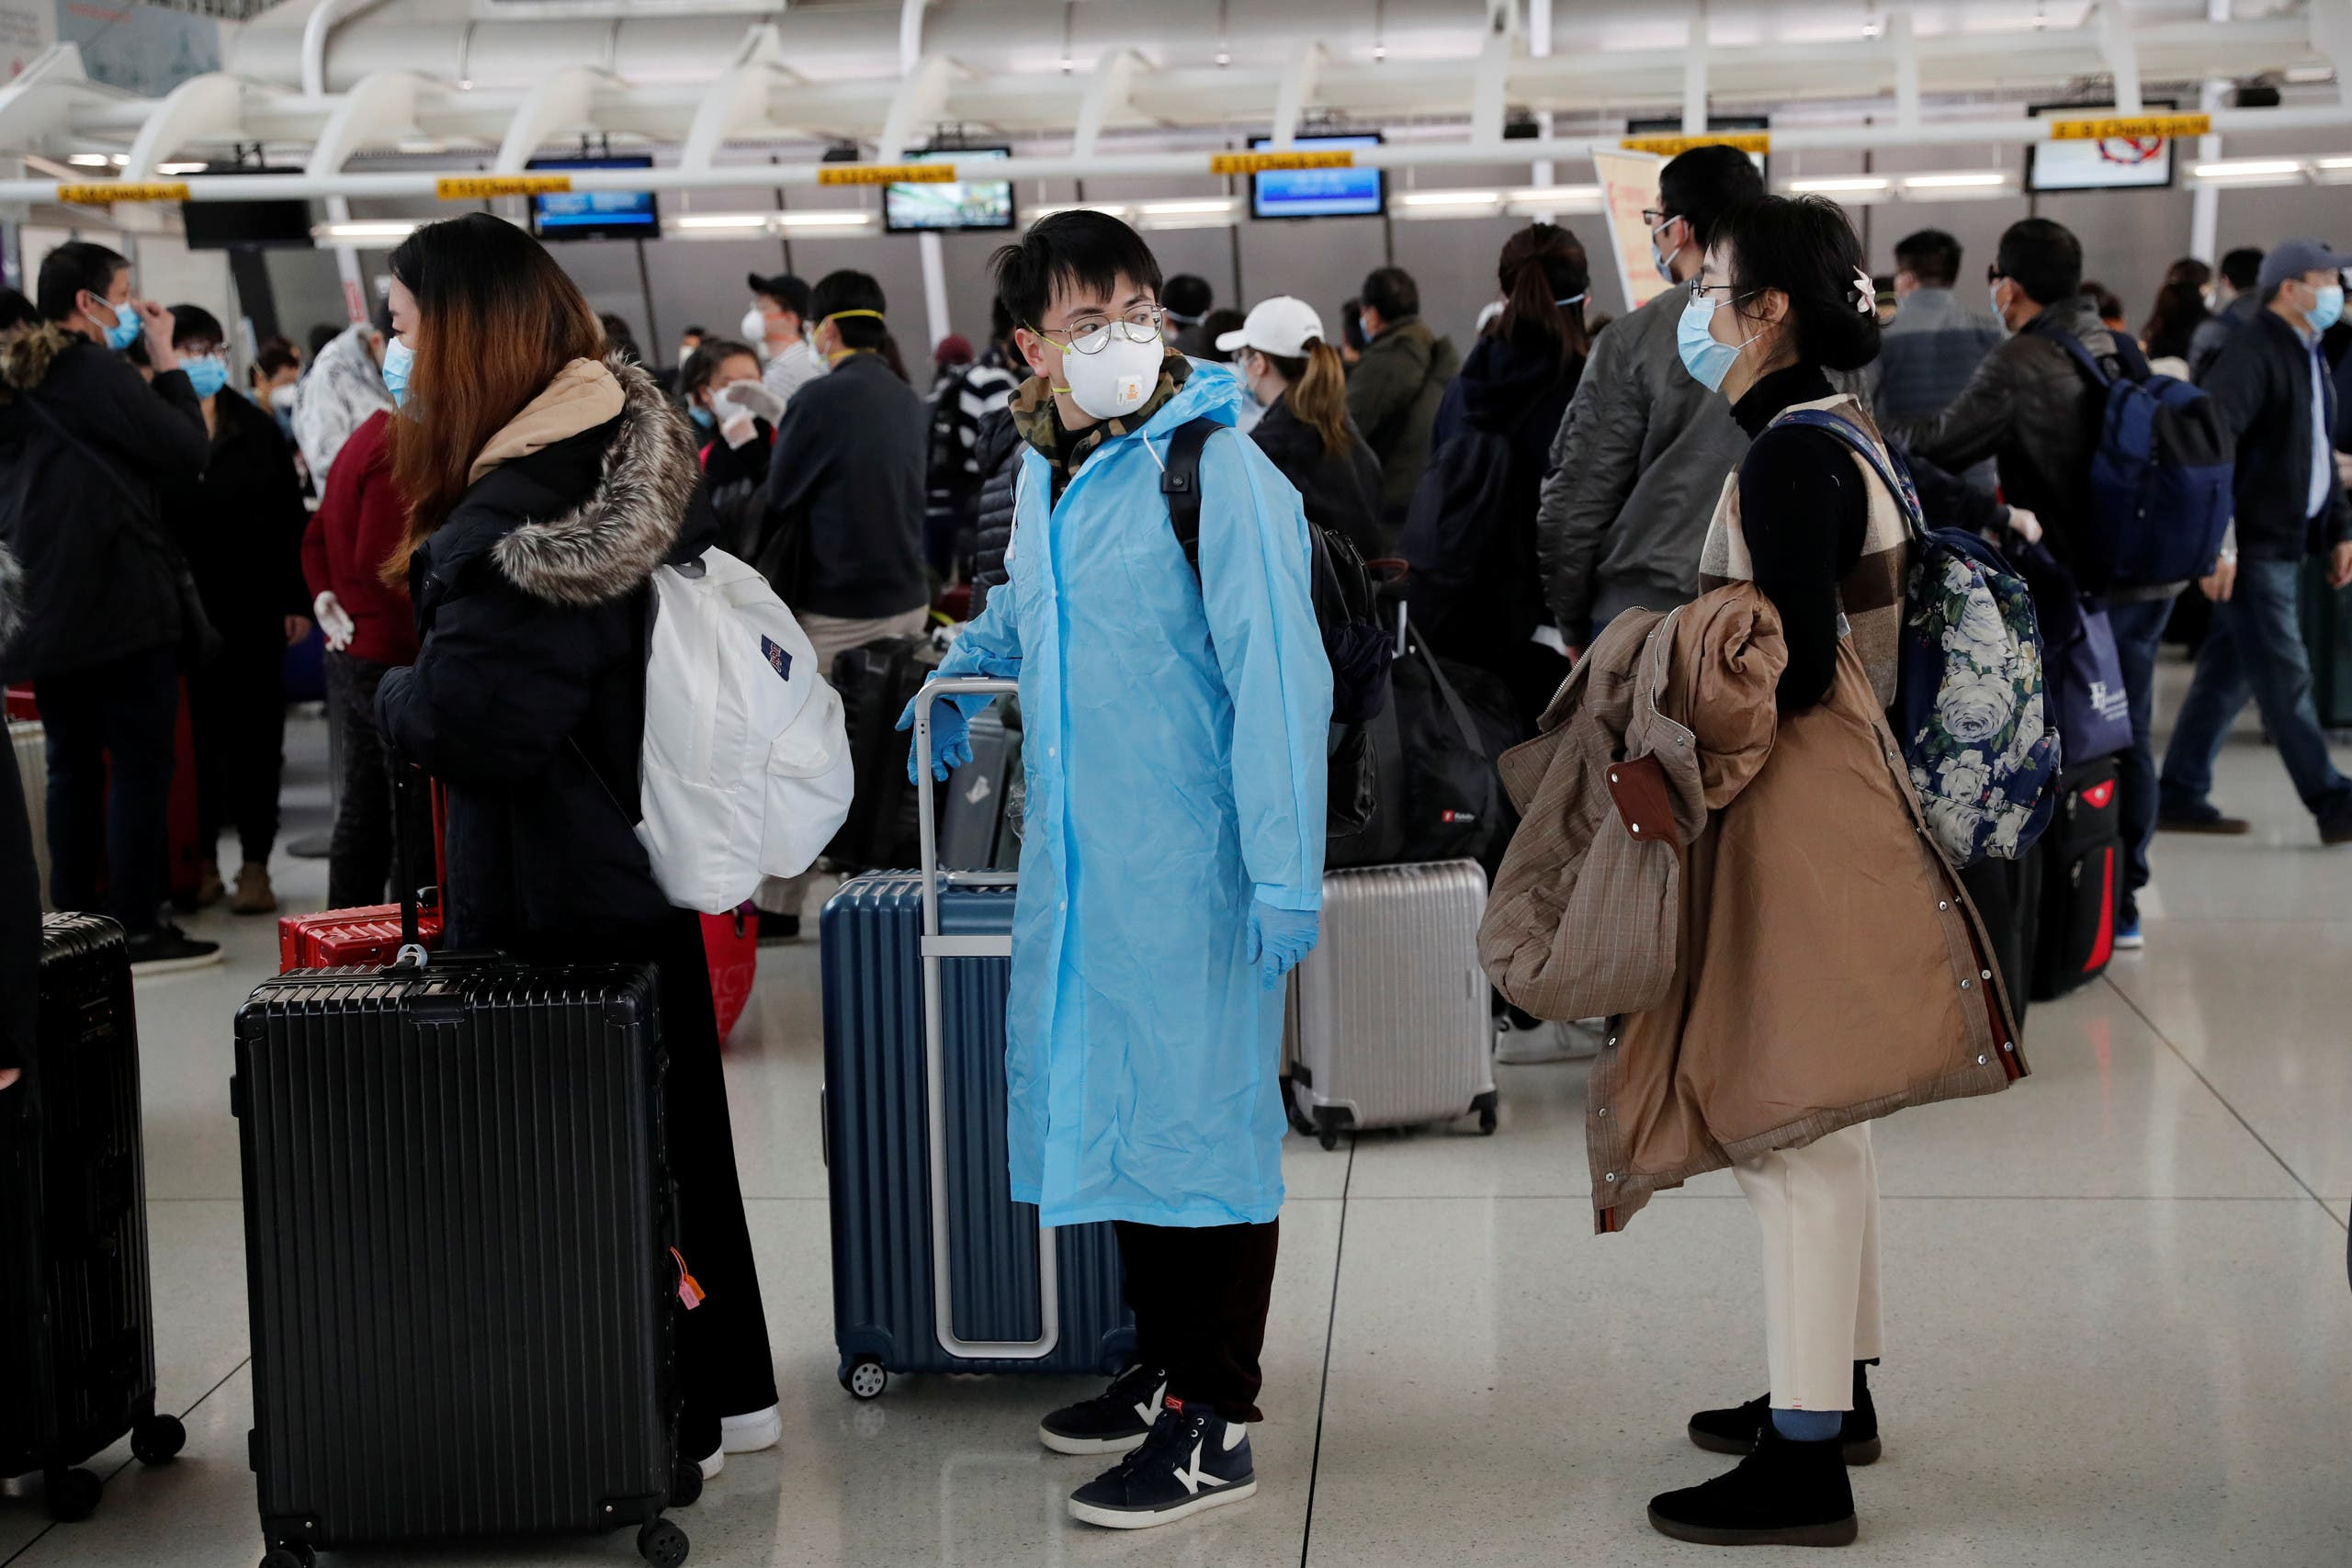 Passengers waiting to check in for an Air China flight are seen with face masks on. (Reuters)